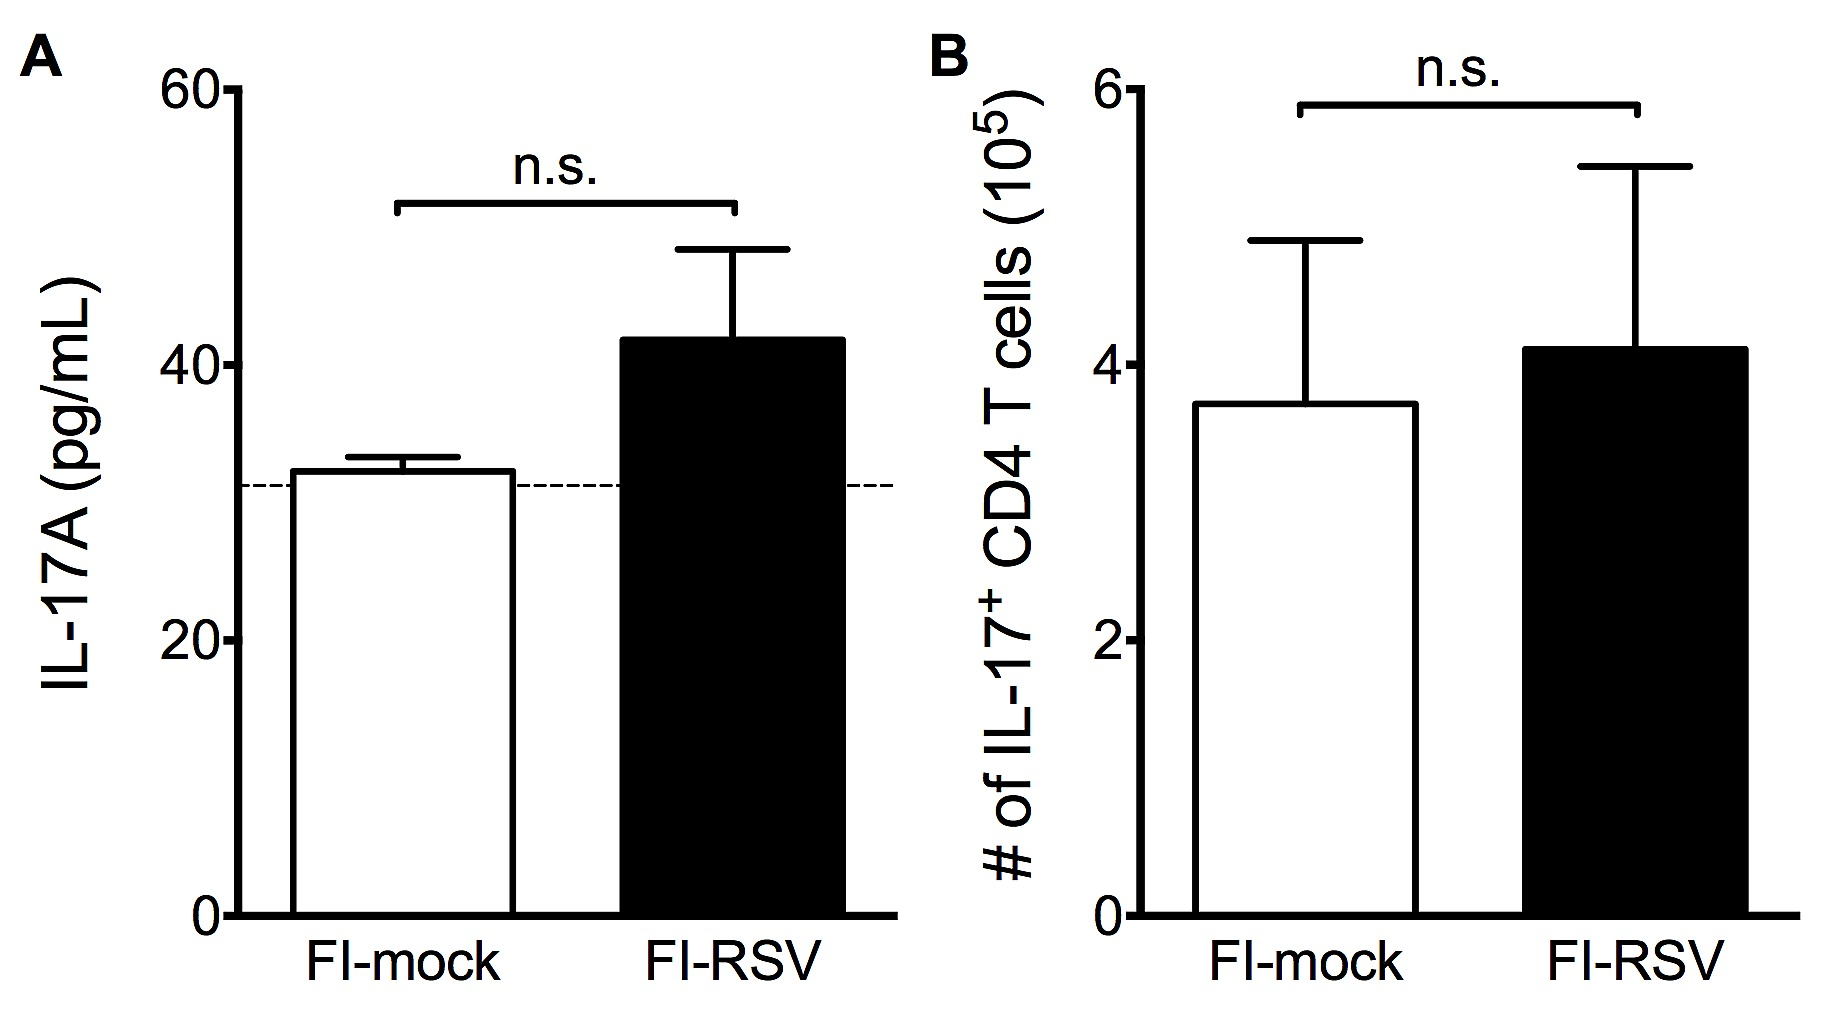 Rsv Vaccine Enhanced Disease Is Orchestrated By The Combined Actions Fig 448 Improved Duty Cycle Control S1 No Significant Alteration To Th17 Response Associated With Fi Immunization